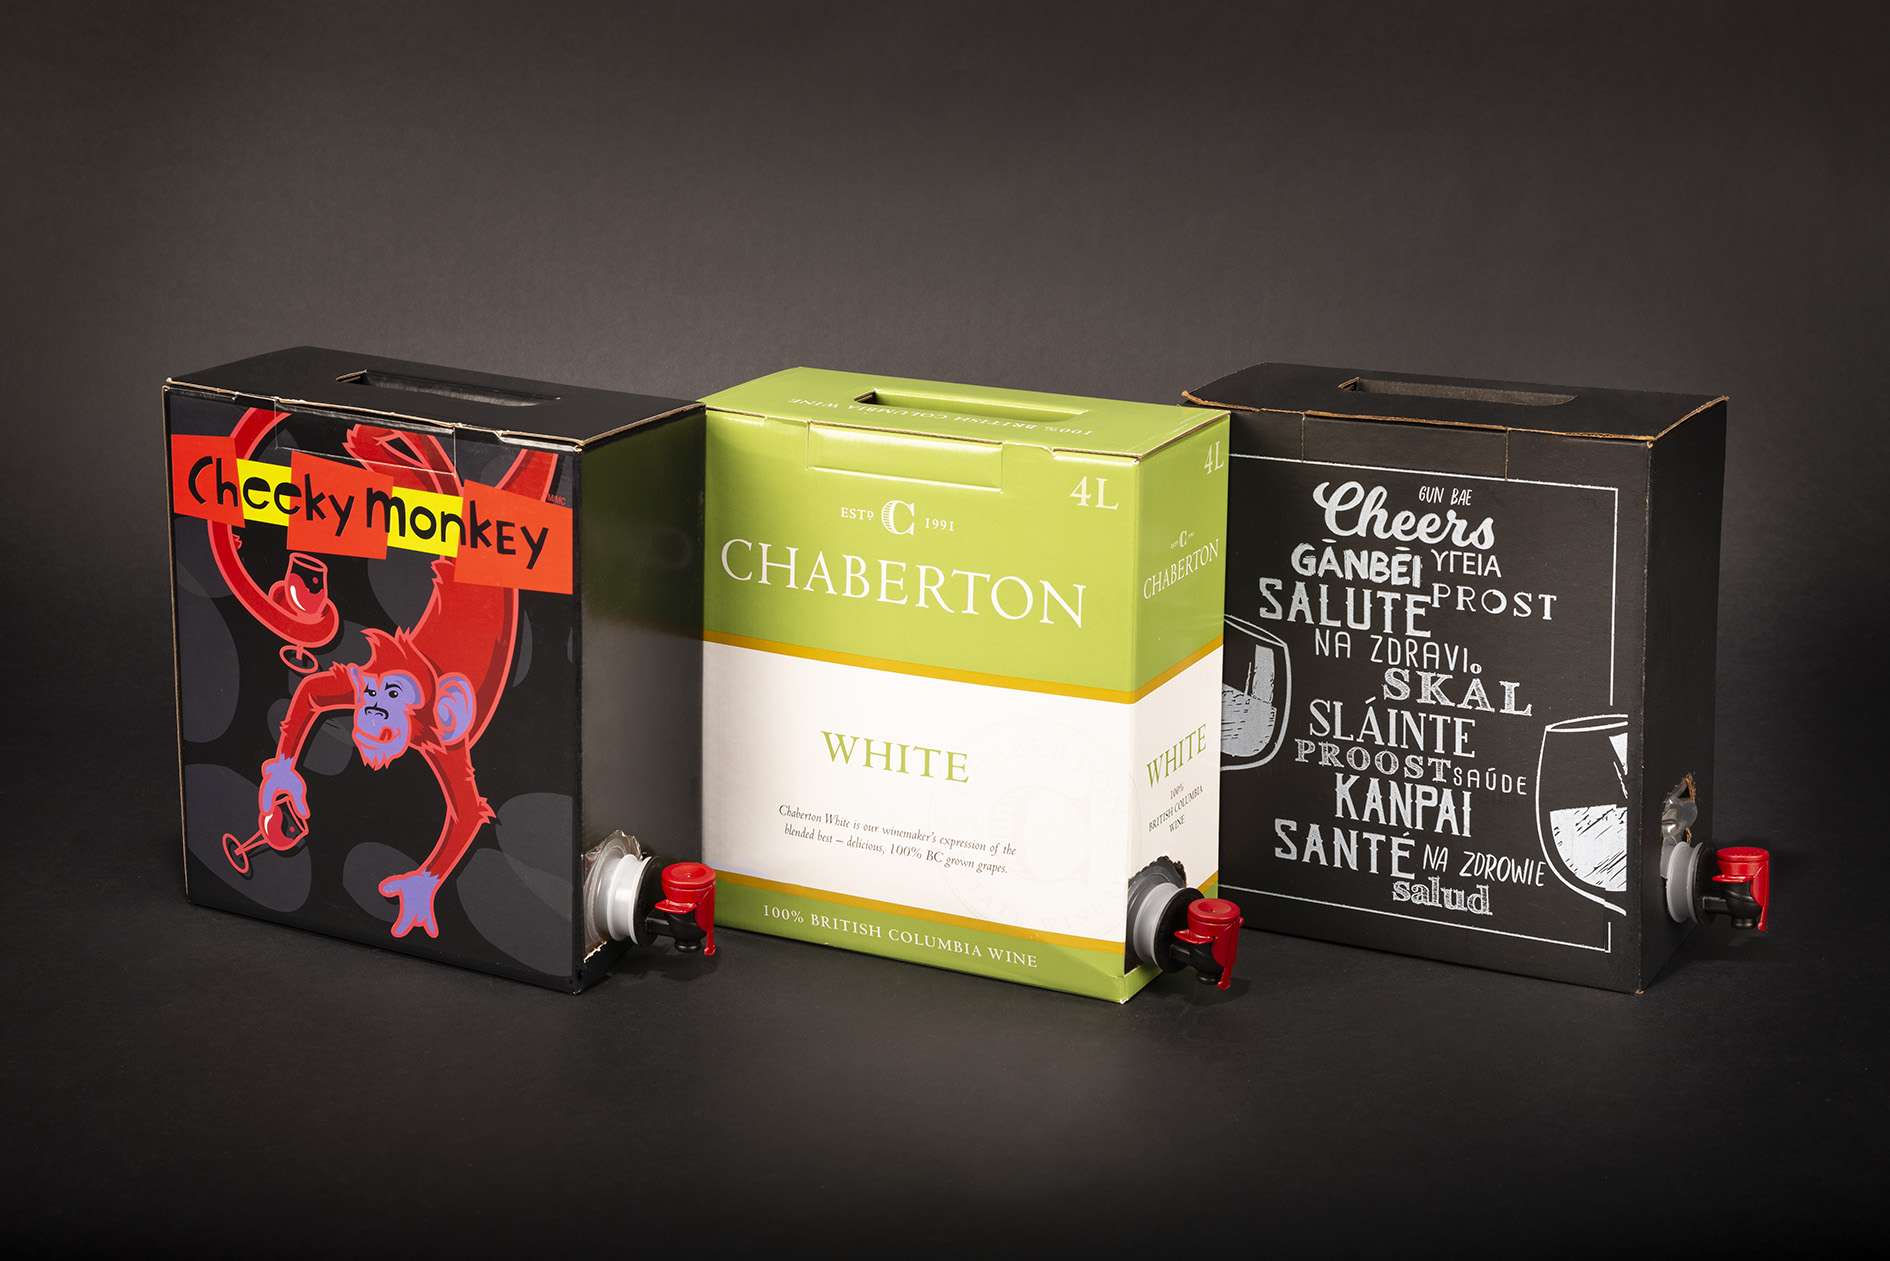 GLBC offers creative wine packaging from labels to retail